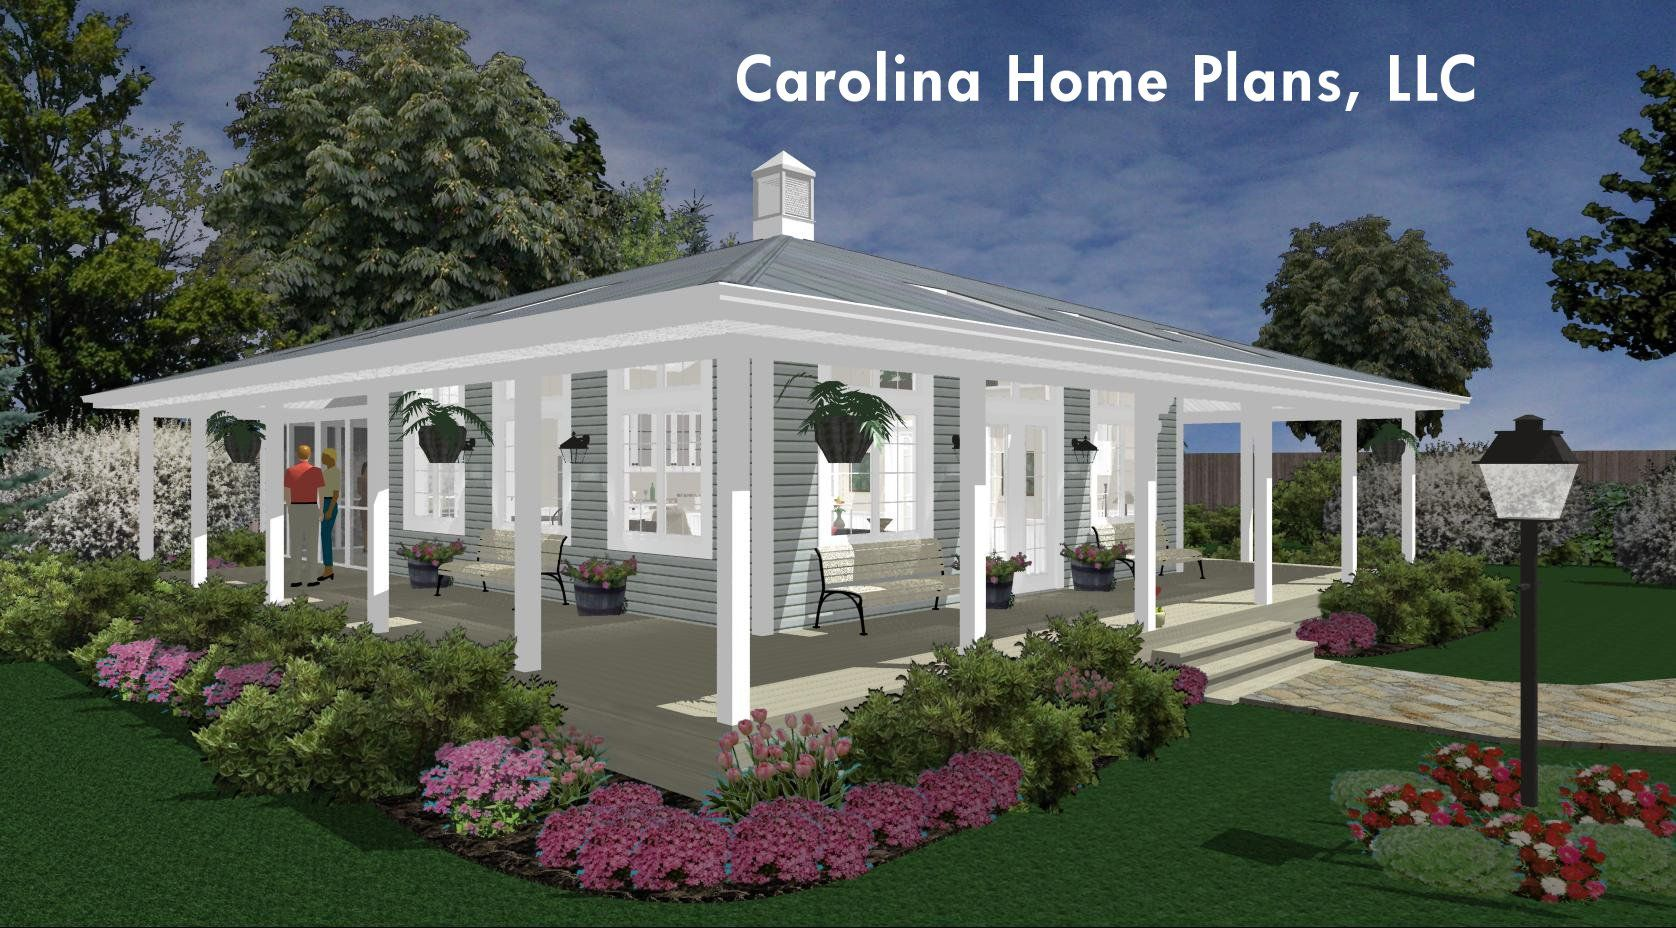 House Plans With Porches House Plans By Category Porch House Plans Country Cottage House Plans House With Porch